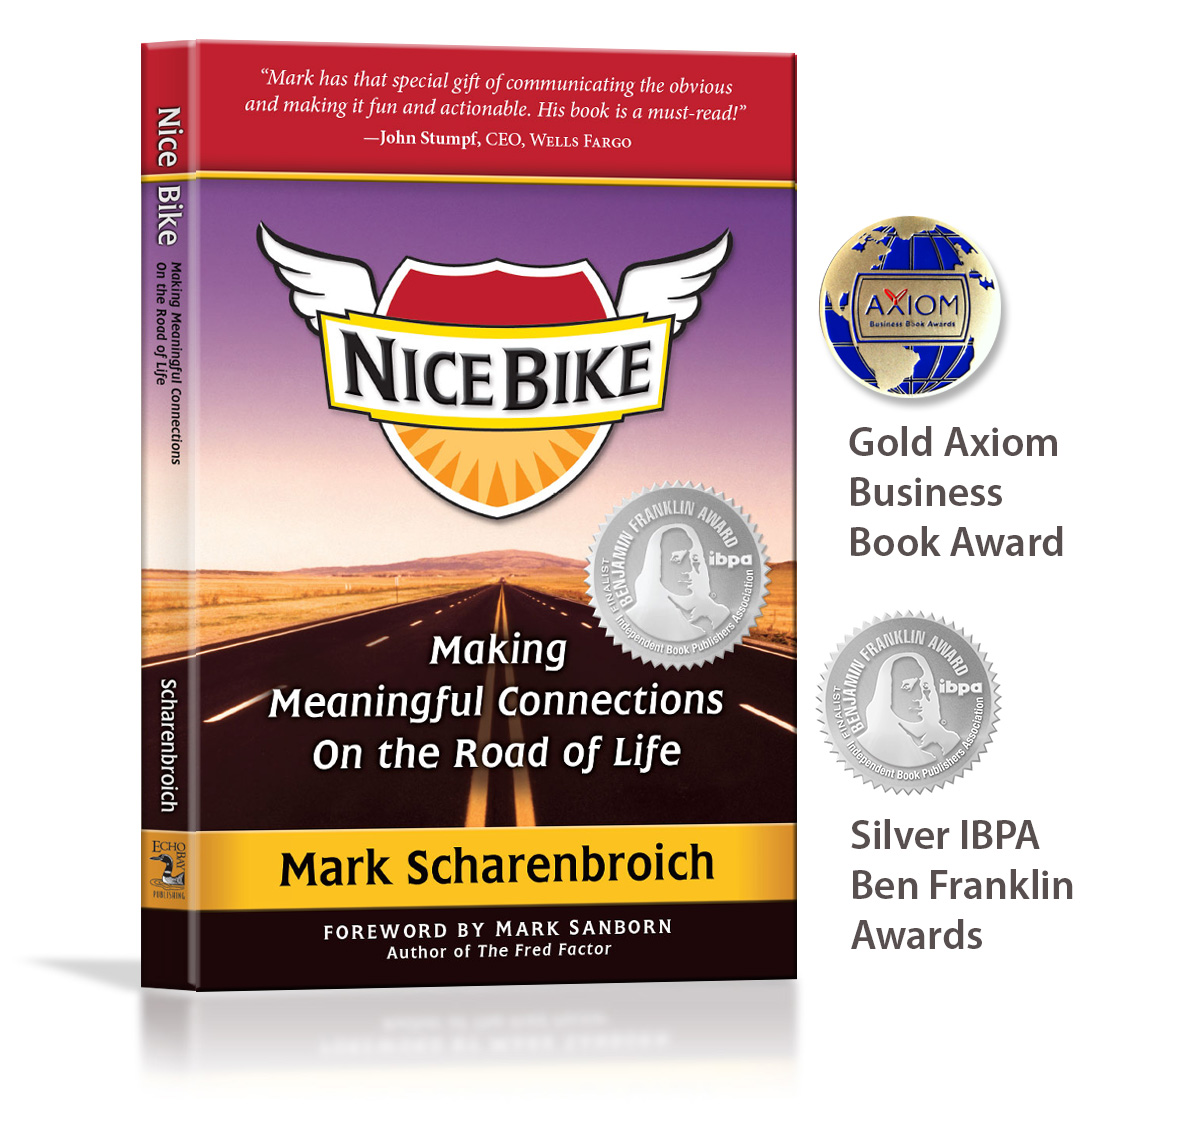 Nice Bike award winning book